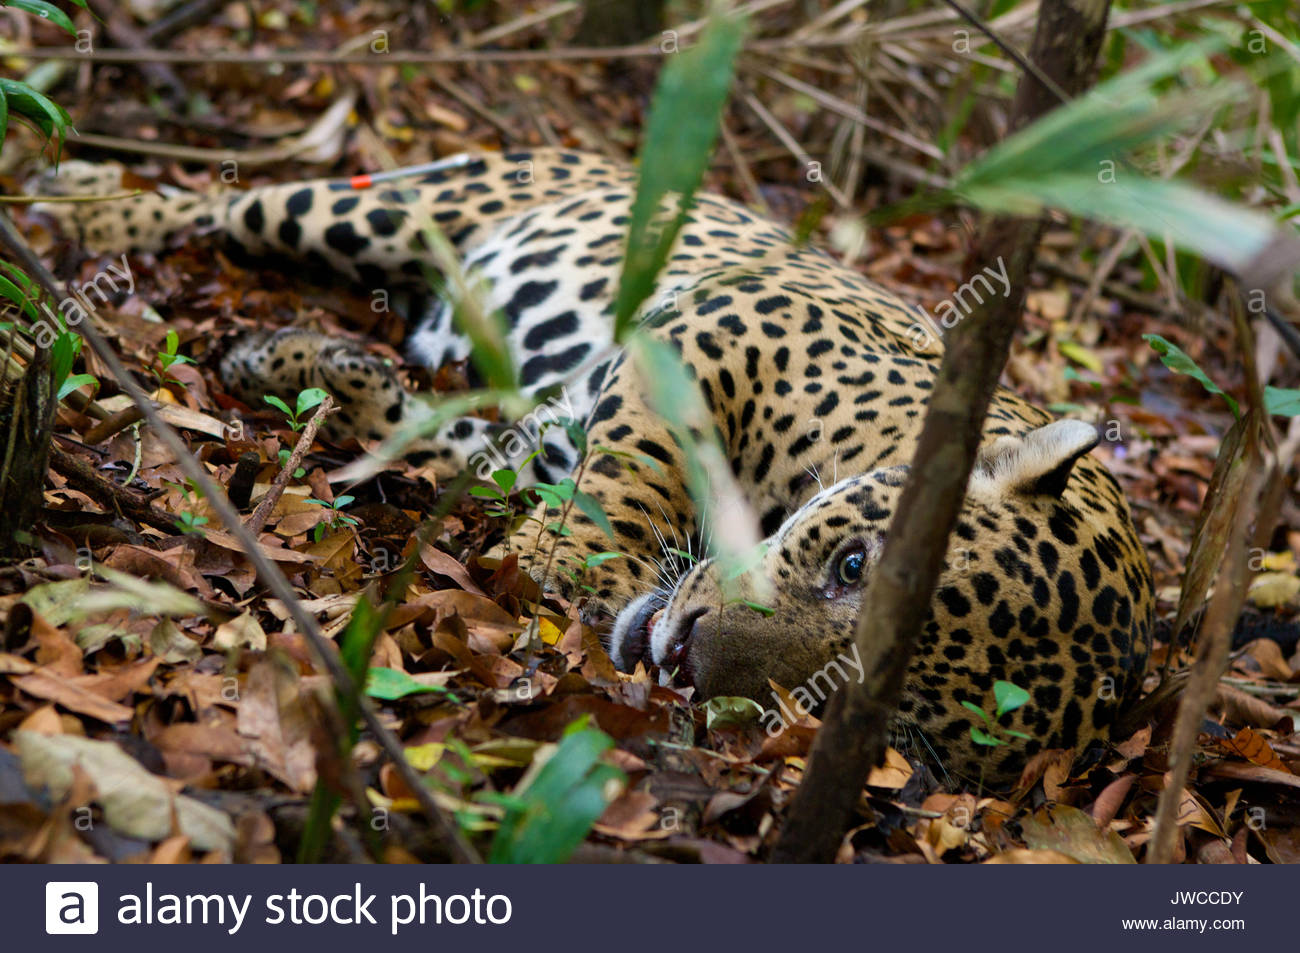 A sedated jaguar after being shot with the tranquilizer in his back haunch. The researchers who sedated him will measure his vitals and fit him with a GPS radio collar to track his movements. - Stock Image